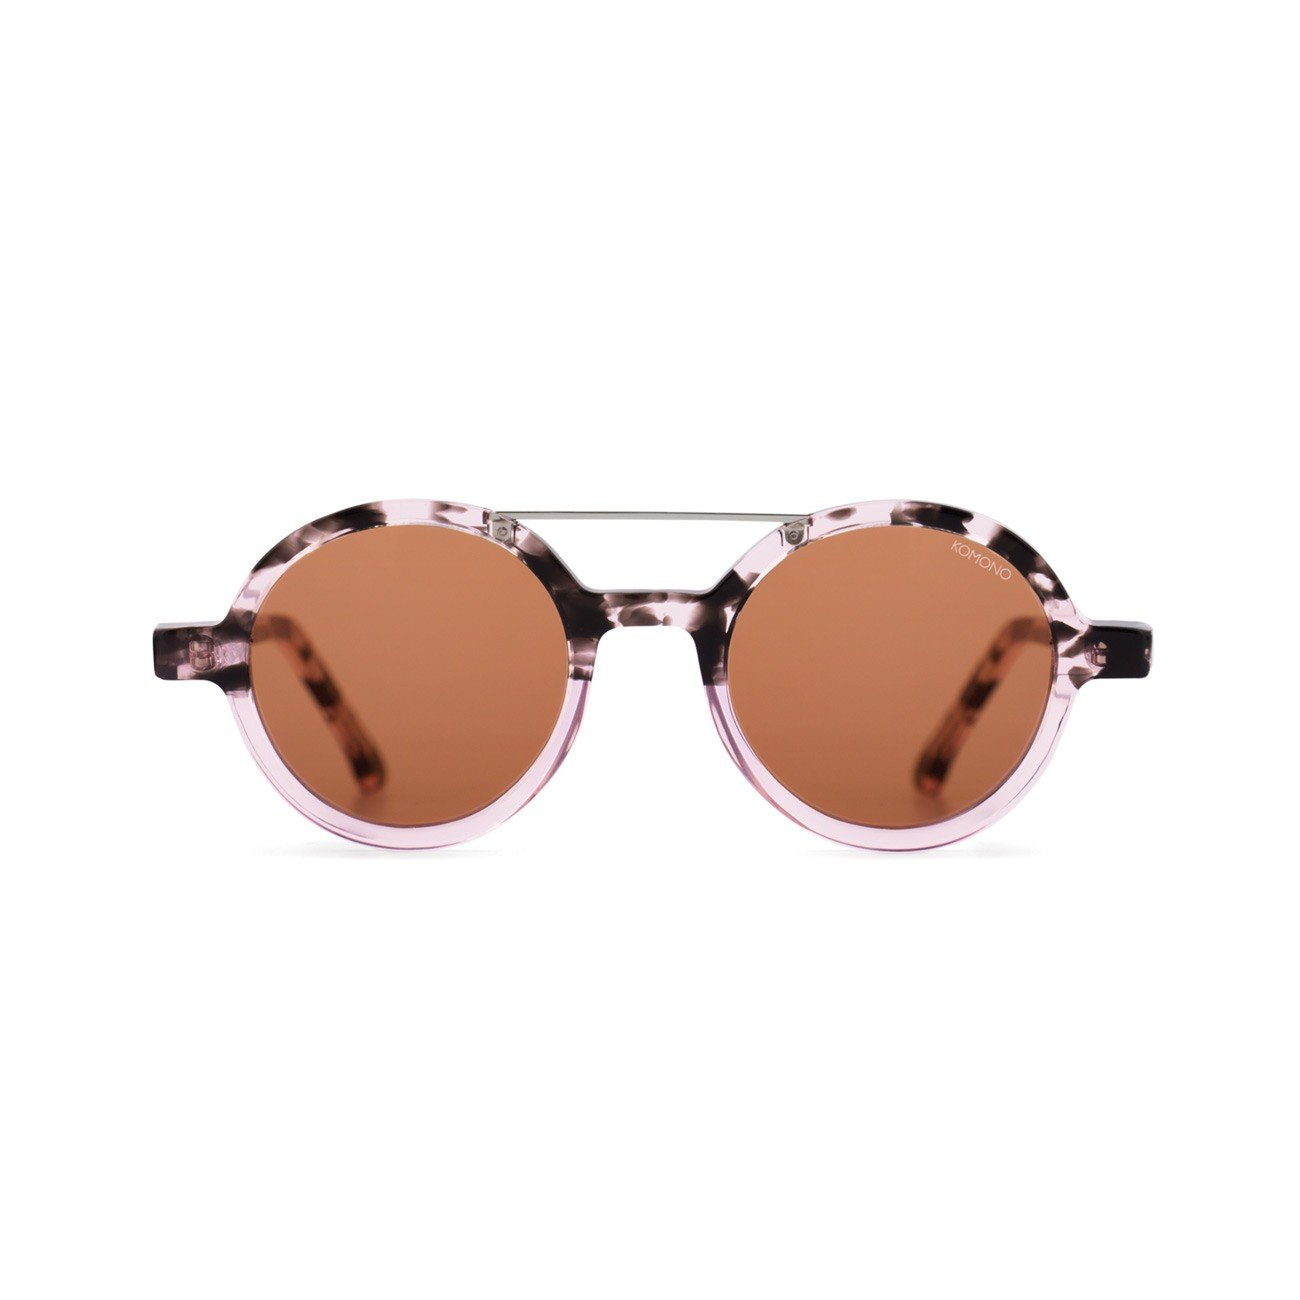 Gafas De Sol Komono Vivien Rose Dust: Amazon.es: Ropa y ...